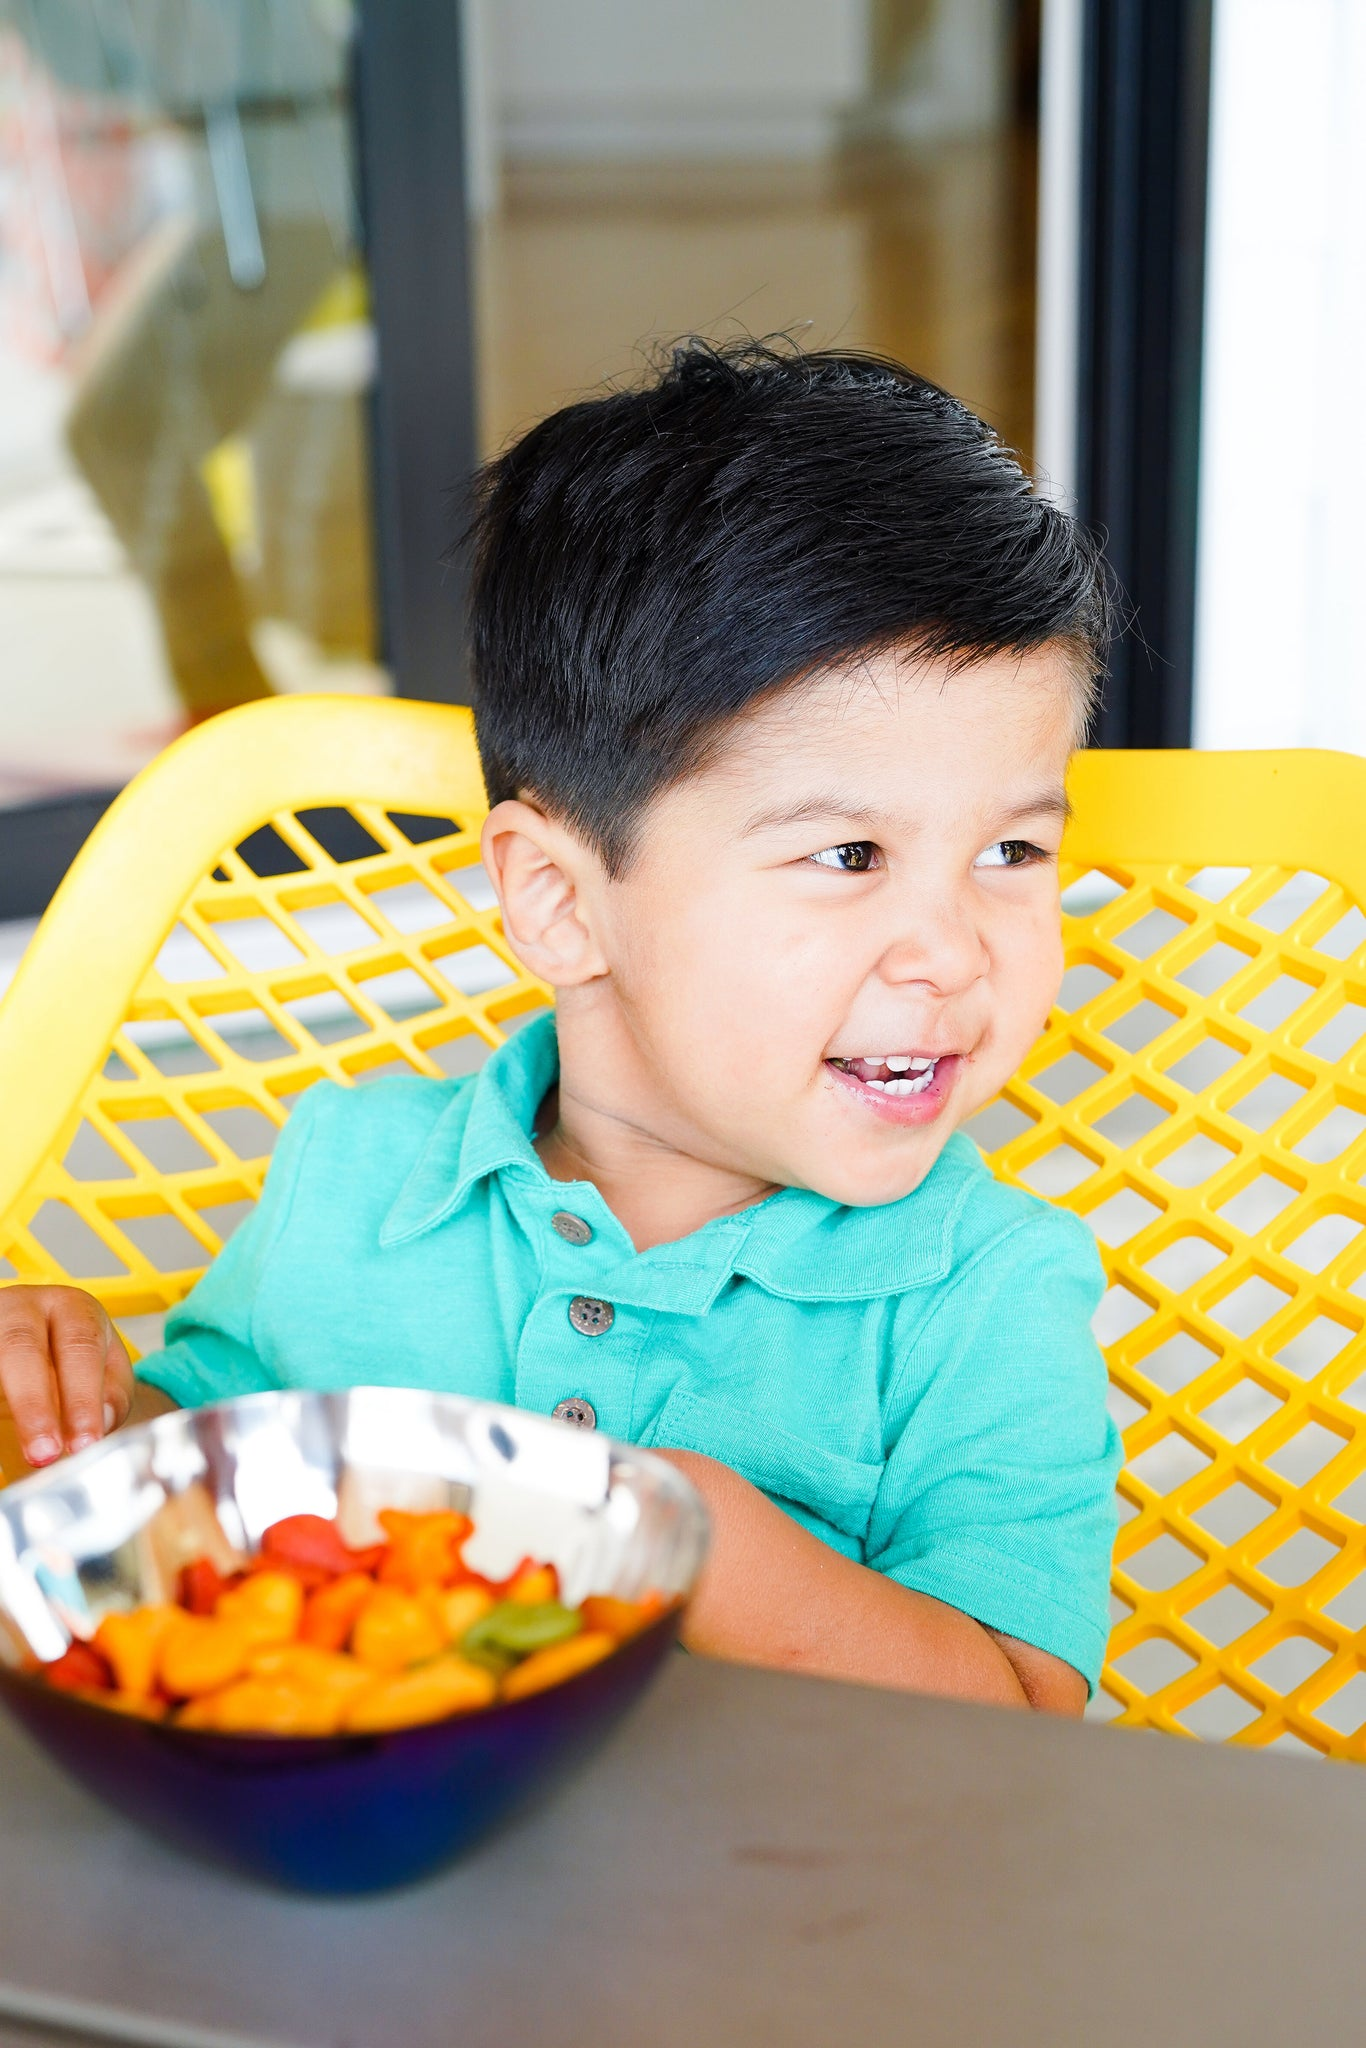 Child using blue stainless steel bowls, non-toxic, plastic-free, 100% metal, no chipping or peeling